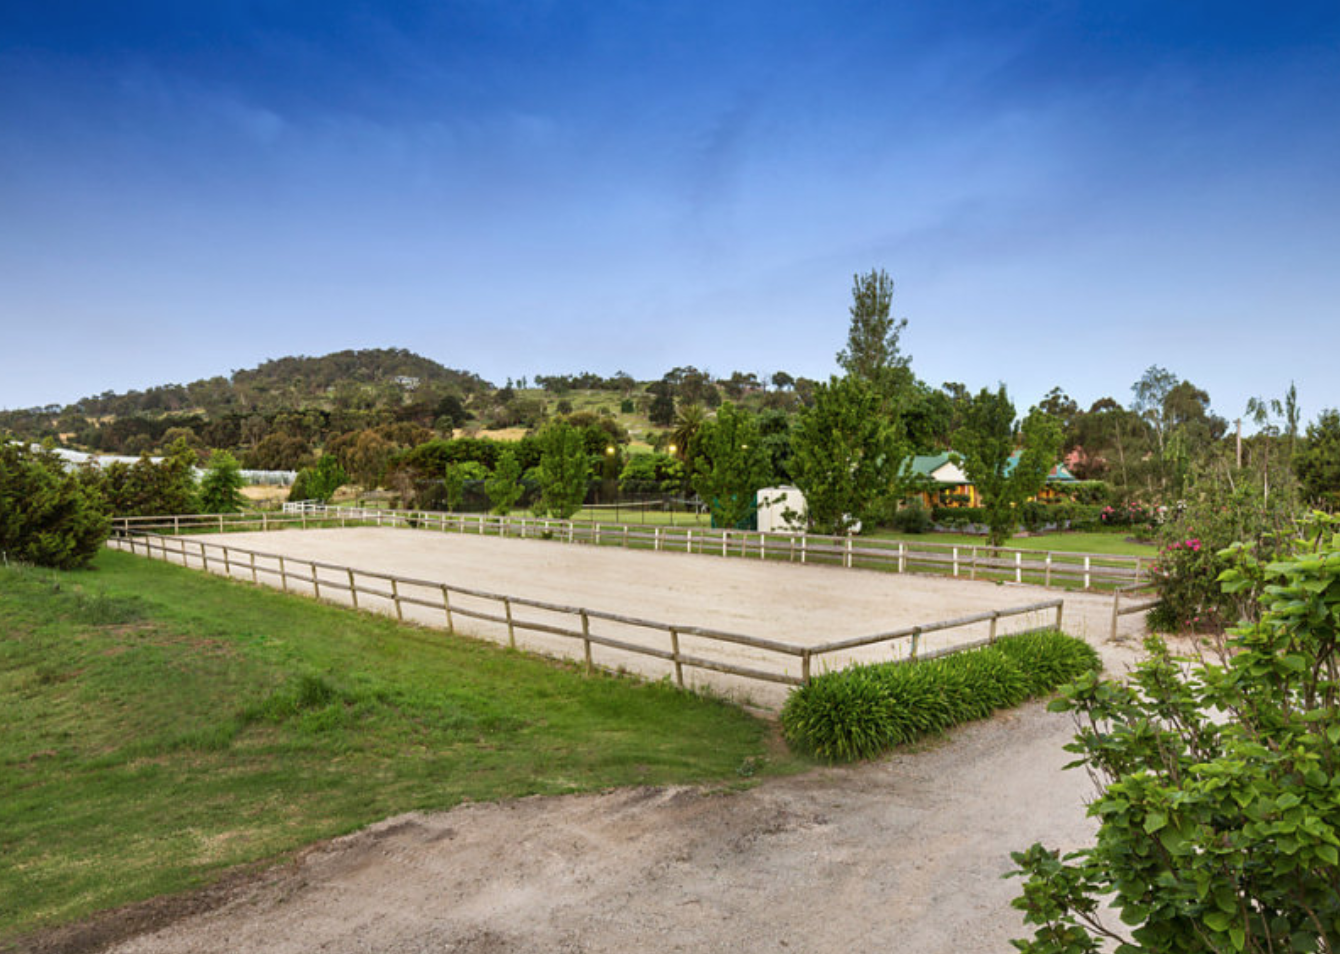 The Arena - Where the training begins. From lessons through to horse training and everything in between, it all takes place on our well surfaced, fenced, 60x20m, floodlit sand riding arena. If you're not feeling the sand, we also have a jump paddock with poles and wings for your convenience.